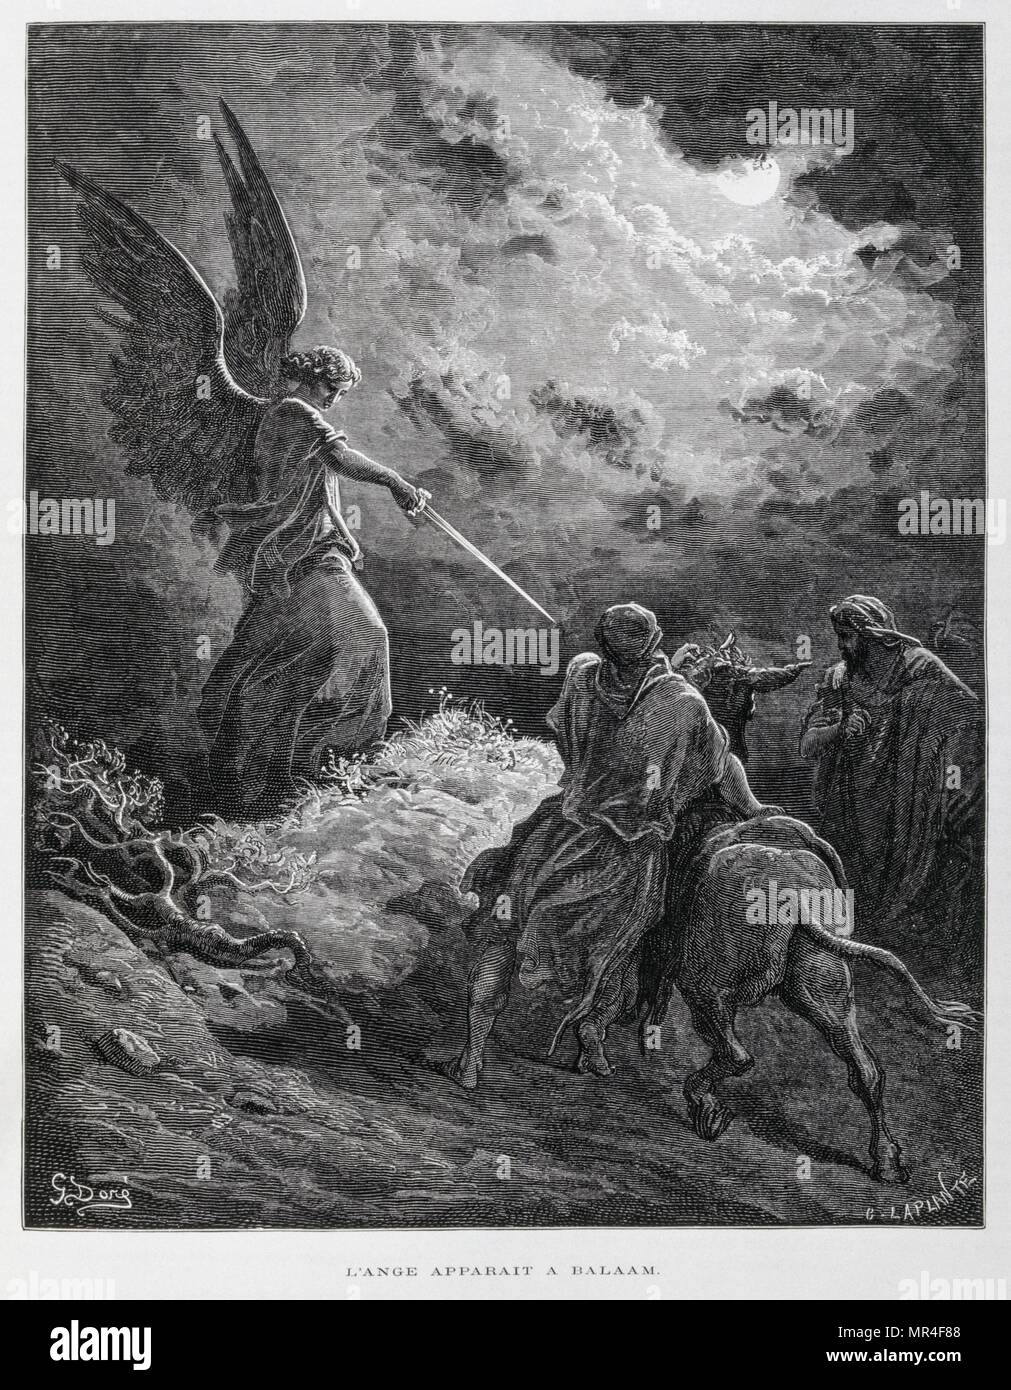 An Angel Met Balaam with a Sword, Illustration from the Dore Bible 1866. In 1866, the French artist and illustrator Gustave Dore (1832–1883), published a series of 241 wood engravings for a new deluxe edition of the 1843 French translation of the Vulgate Bible, popularly known as the Bible de Tours. This new edition was known as La Grande Bible de Tours and its illustrations were immensely successful - Stock Image